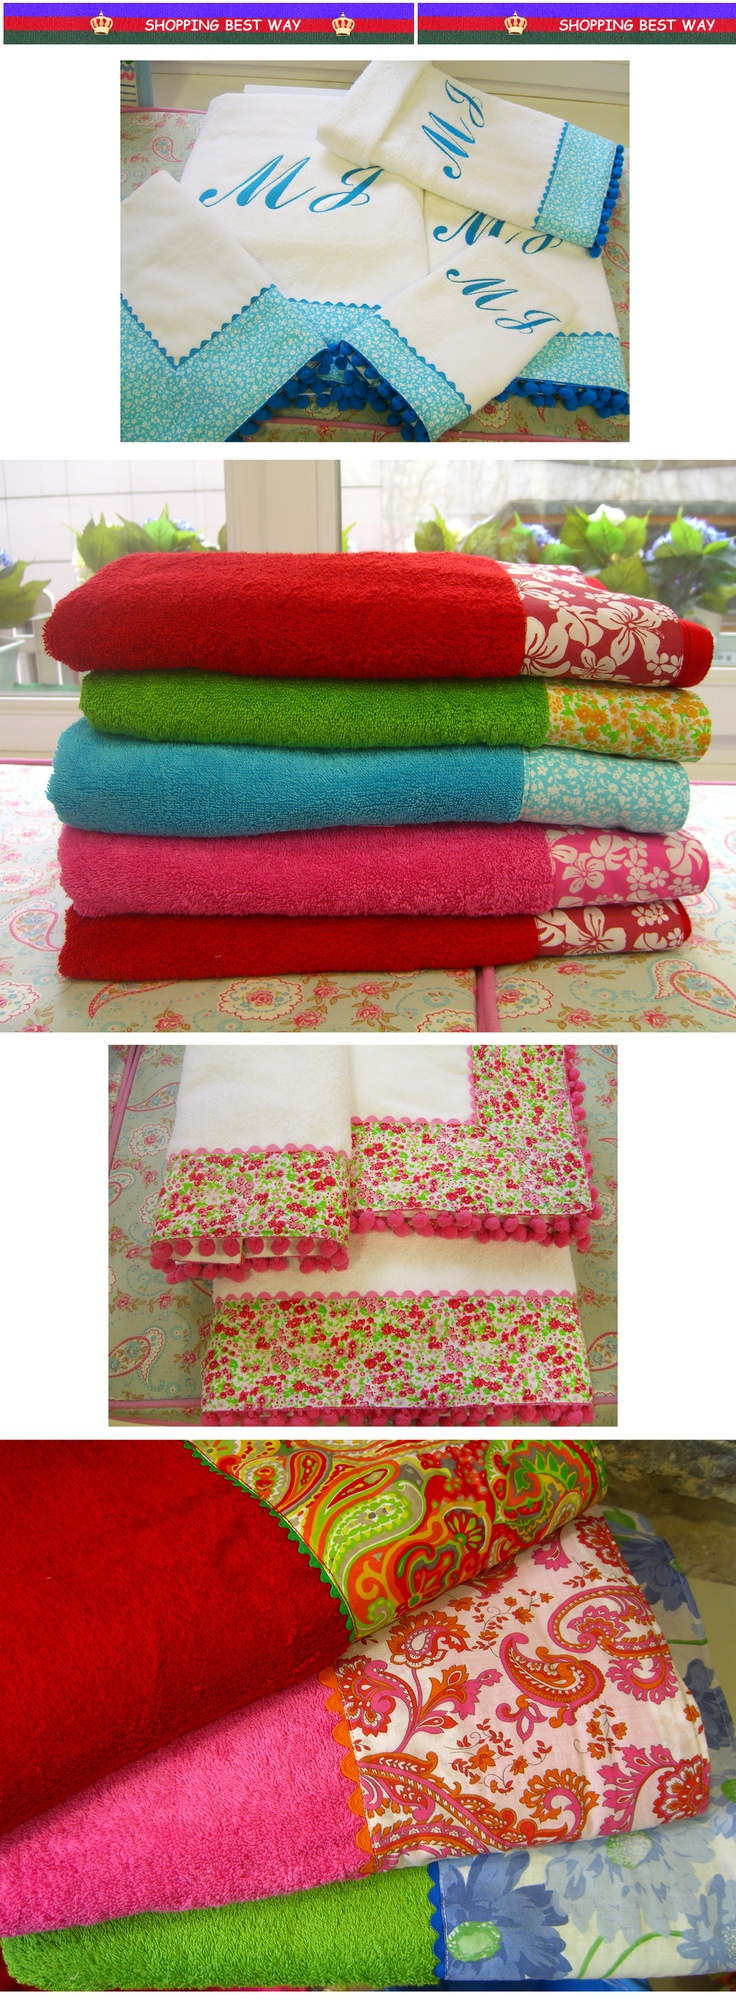 Towels always essential for your home. #Shopping Best Way.